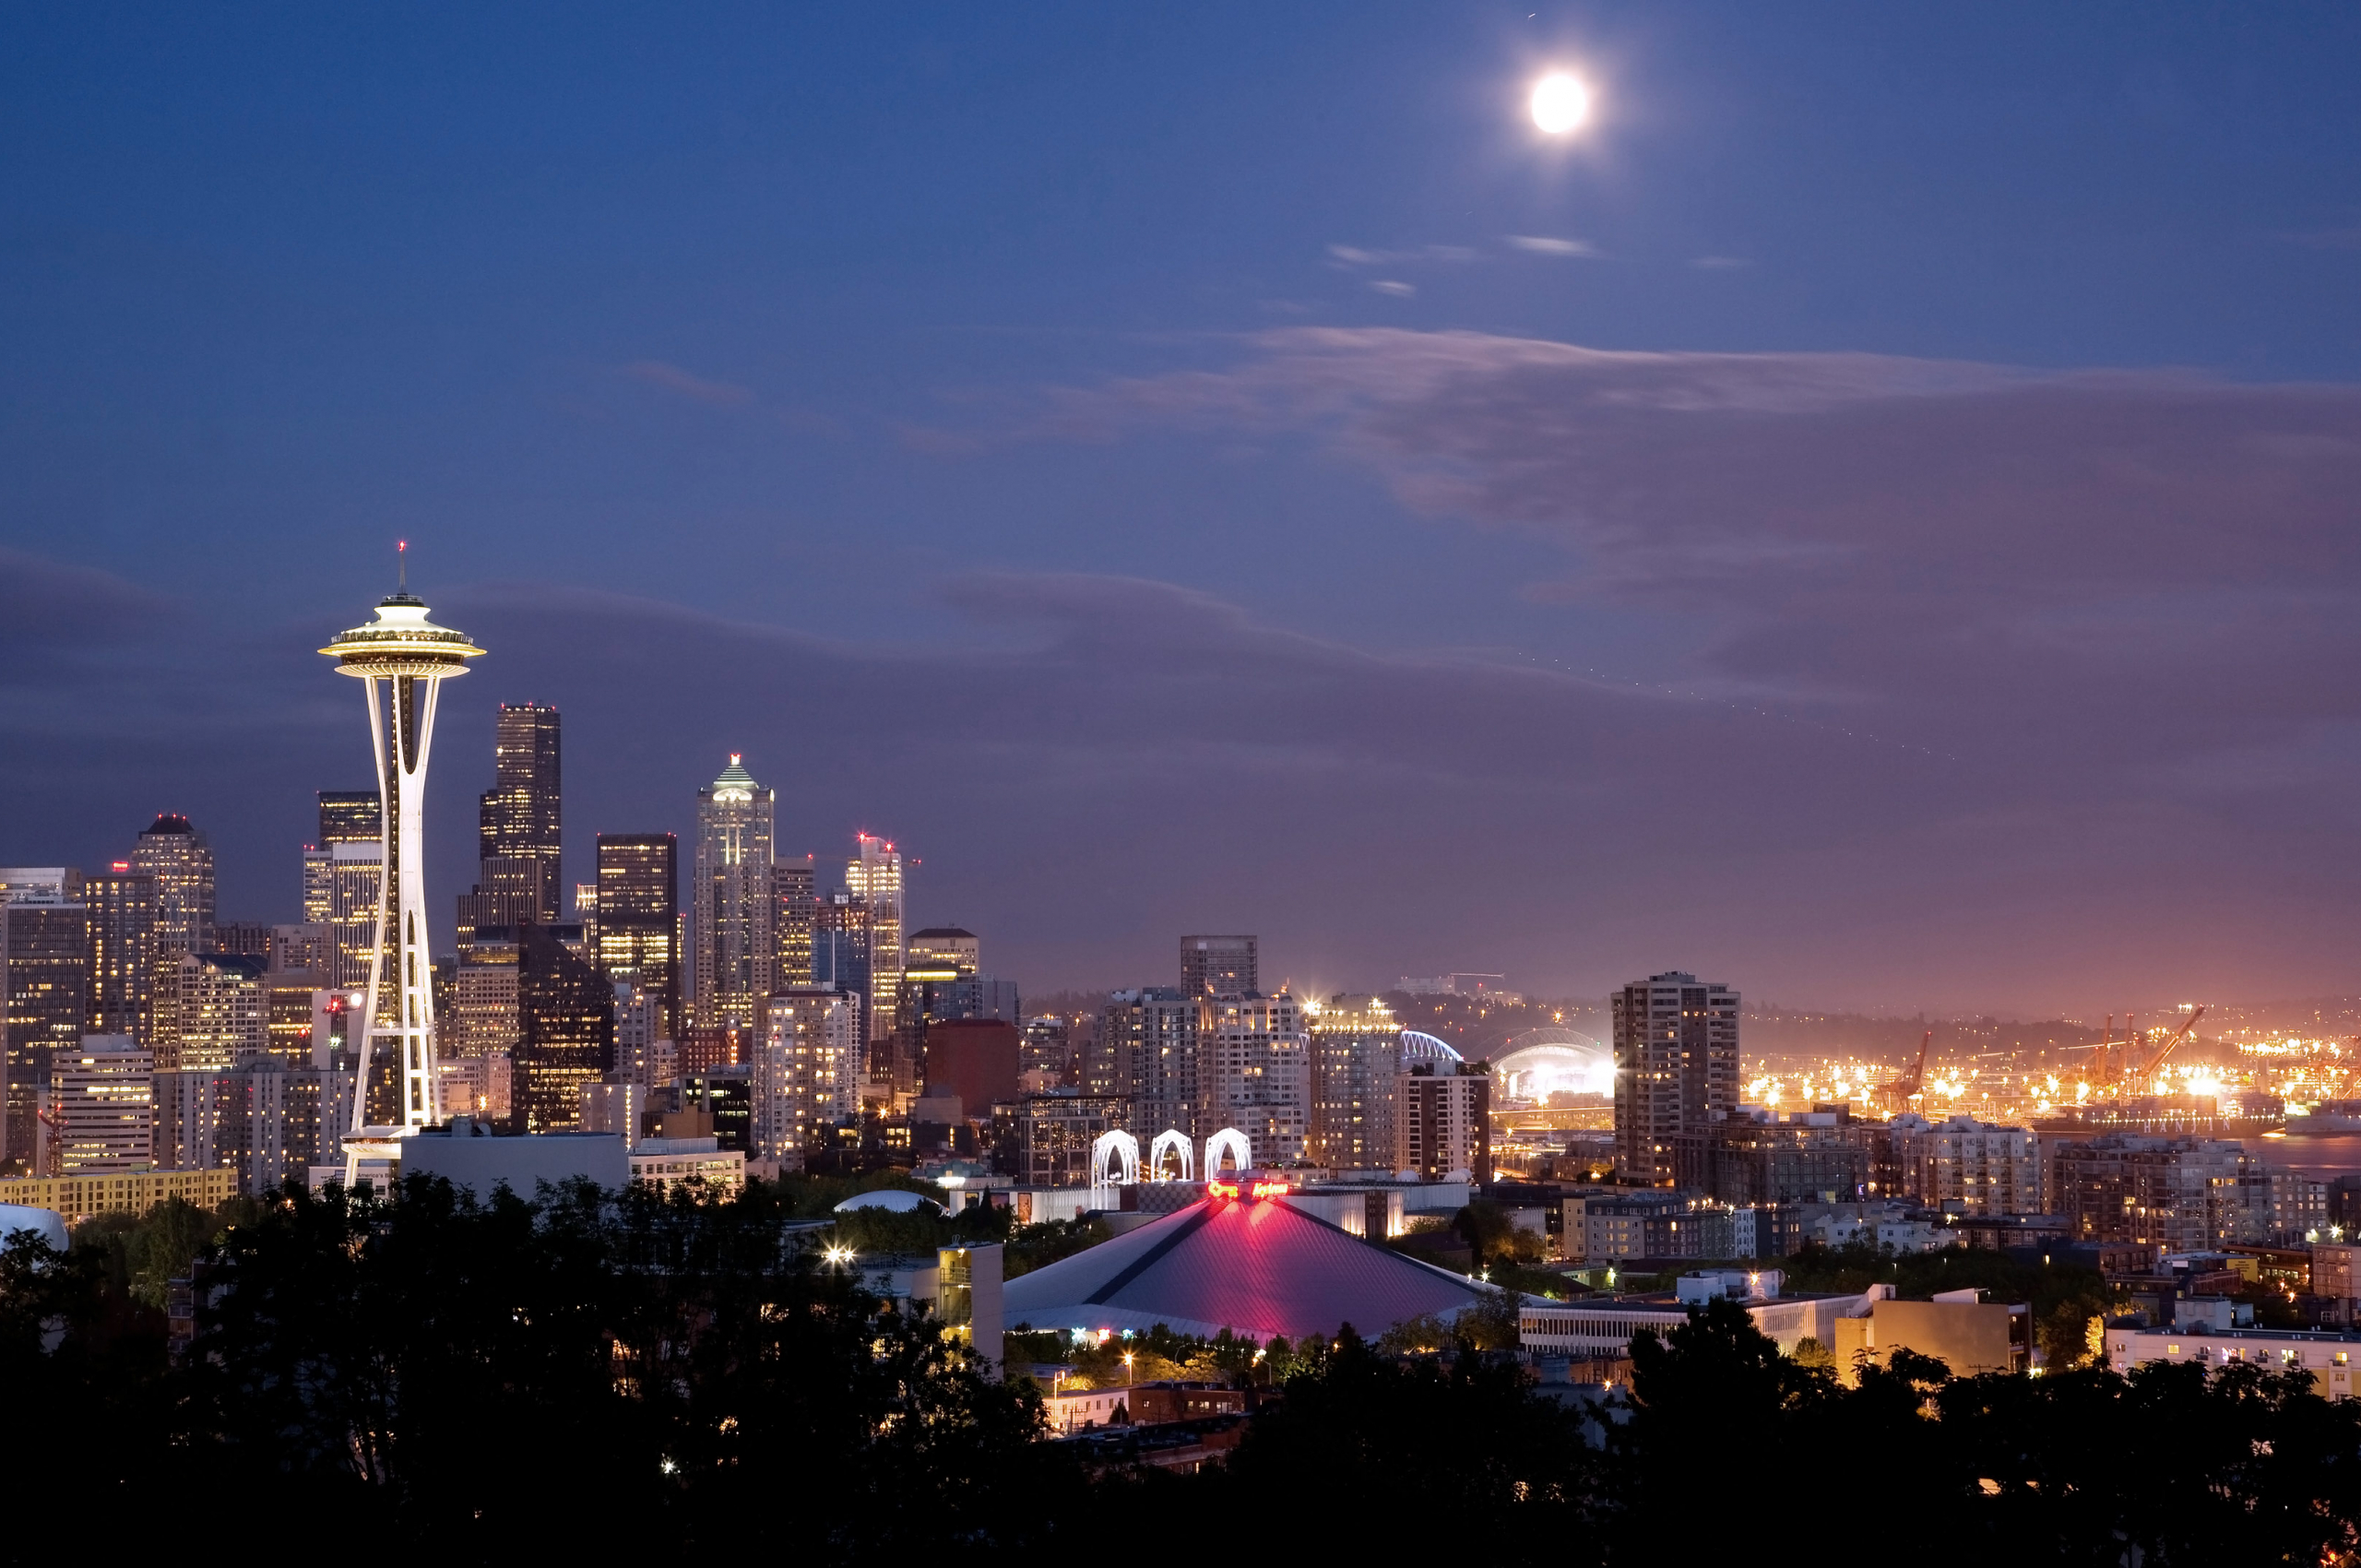 Free Download Space Needle Panorama Seattle Wallpaper 19 Of 30 4k Ultra Hd 3840x2160 For Your Desktop Mobile Tablet Explore 42 4k Seattle Wallpaper Free Seattle Mariners Wallpaper 4k